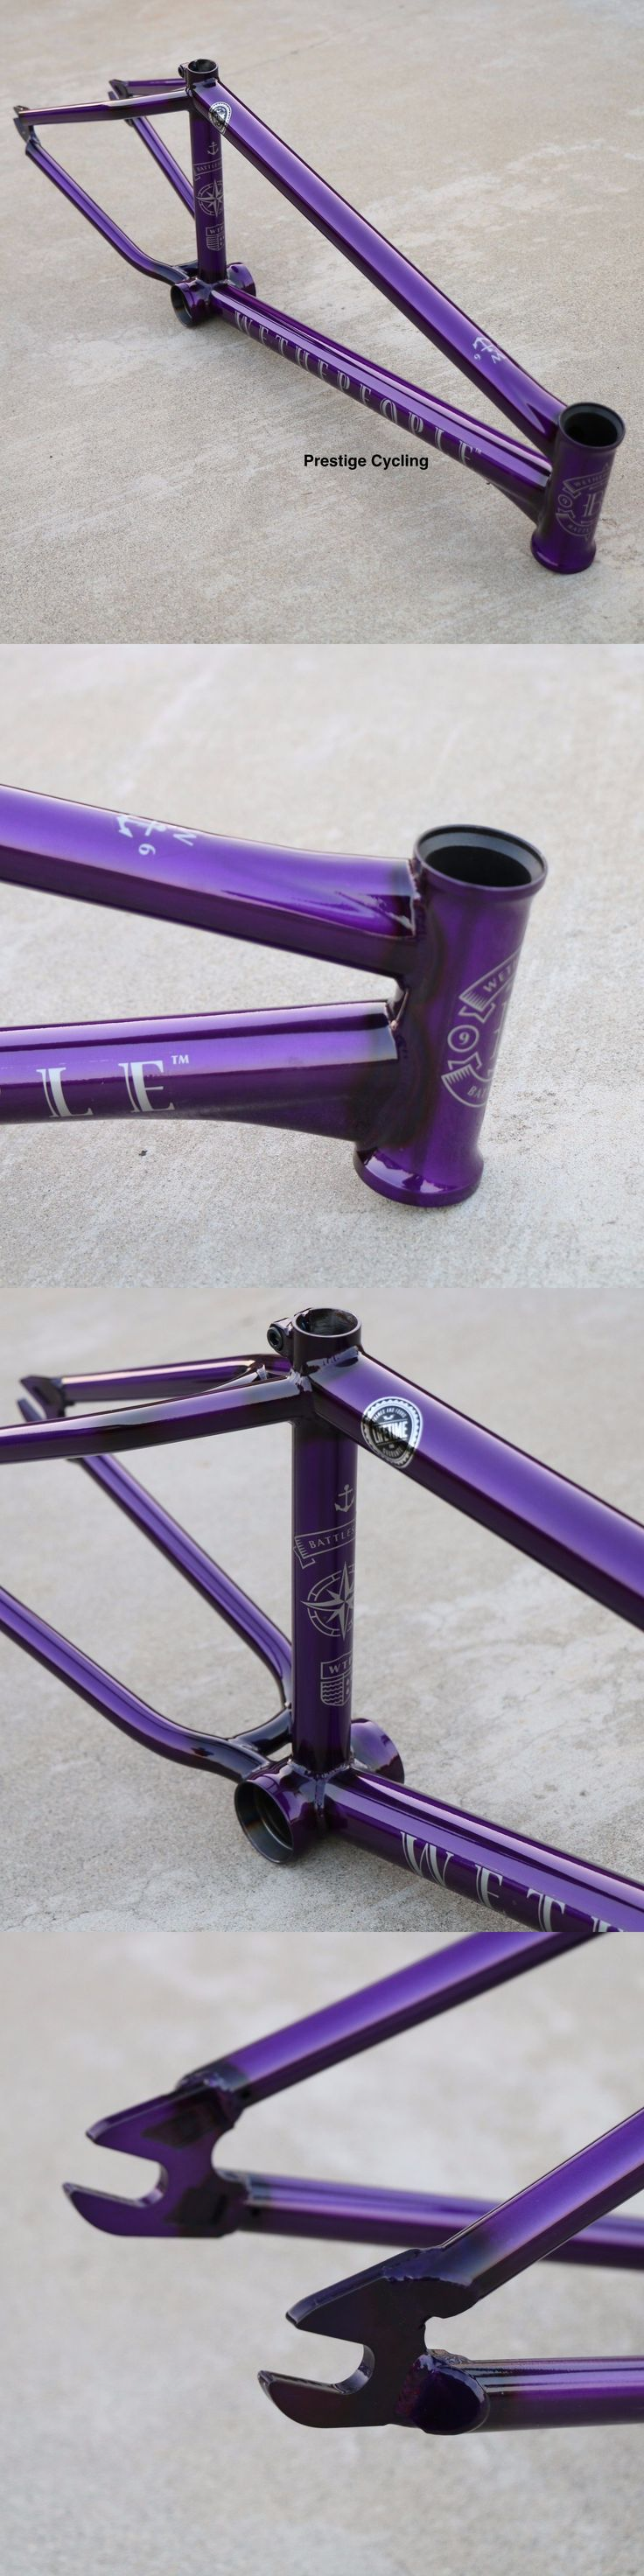 Bicycle Frames 22679: We The People Bmx Battleship Bicycle Frame 21 Trans Purple Sunday Fit Cult -> BUY IT NOW ONLY: $319.95 on eBay!